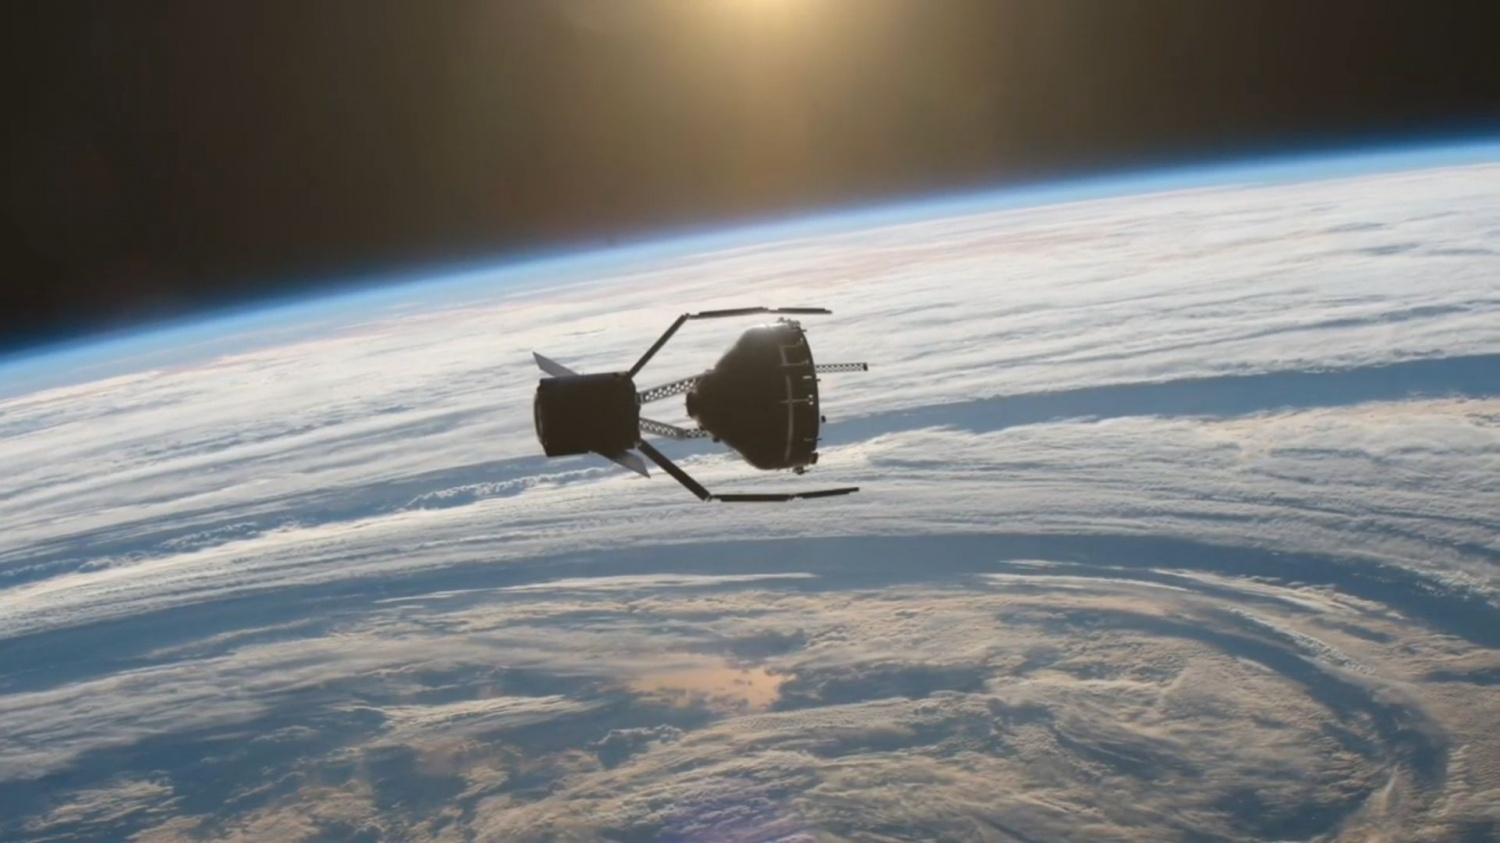 """ESA To Use """"The Claw"""" to Clean Up Space Junk - Science Times"""